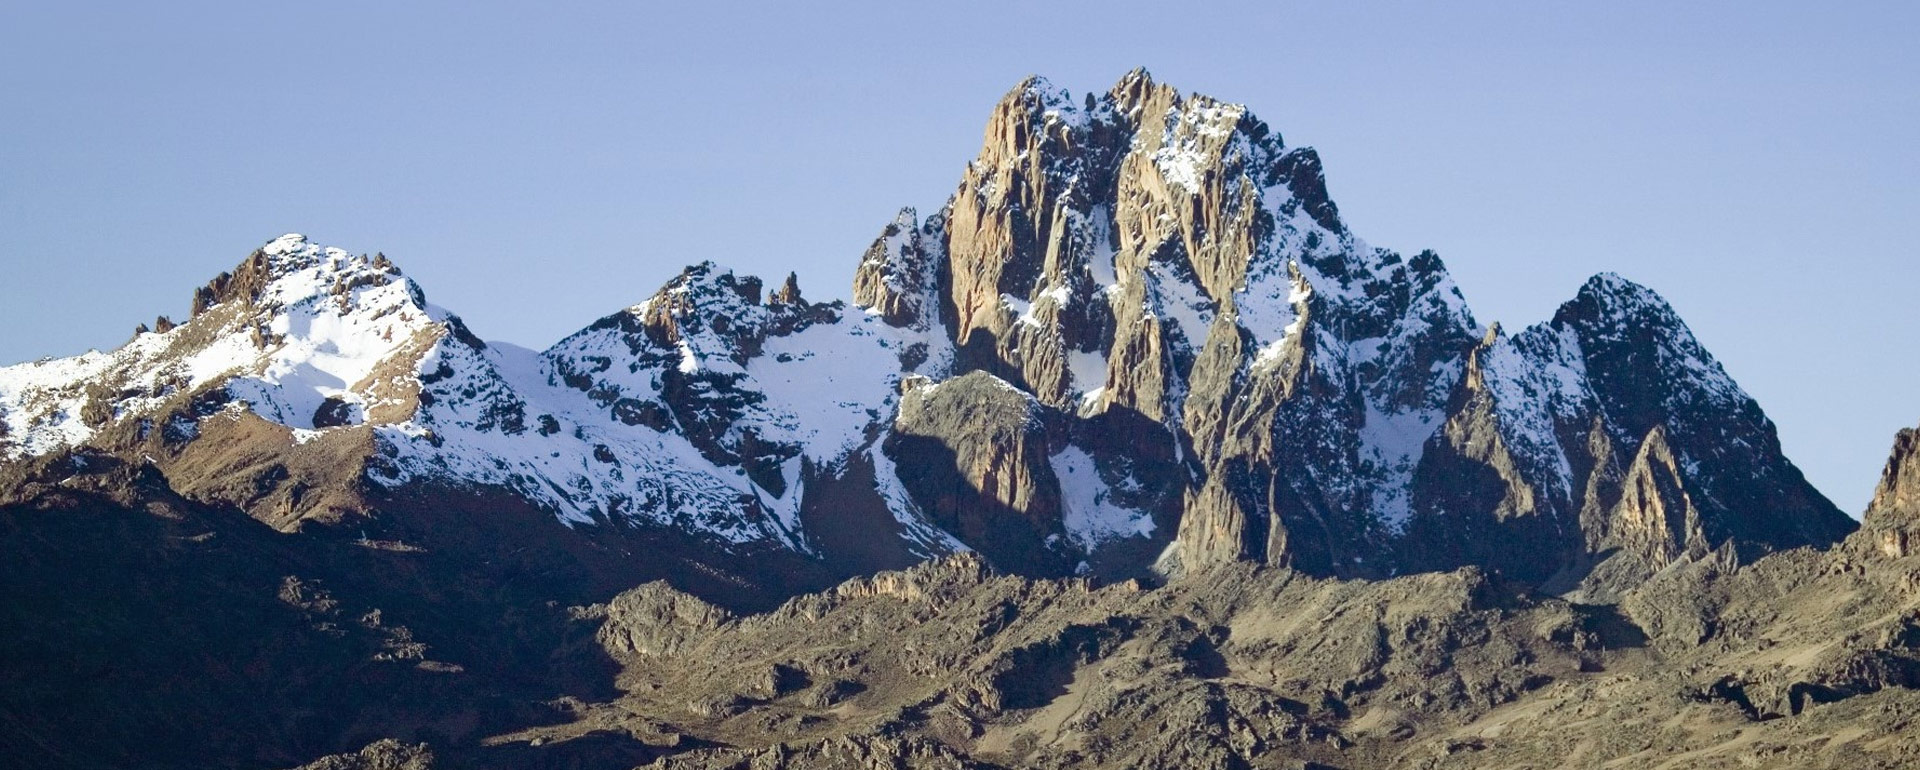 5 Days Mount Kenya Climbing Routes